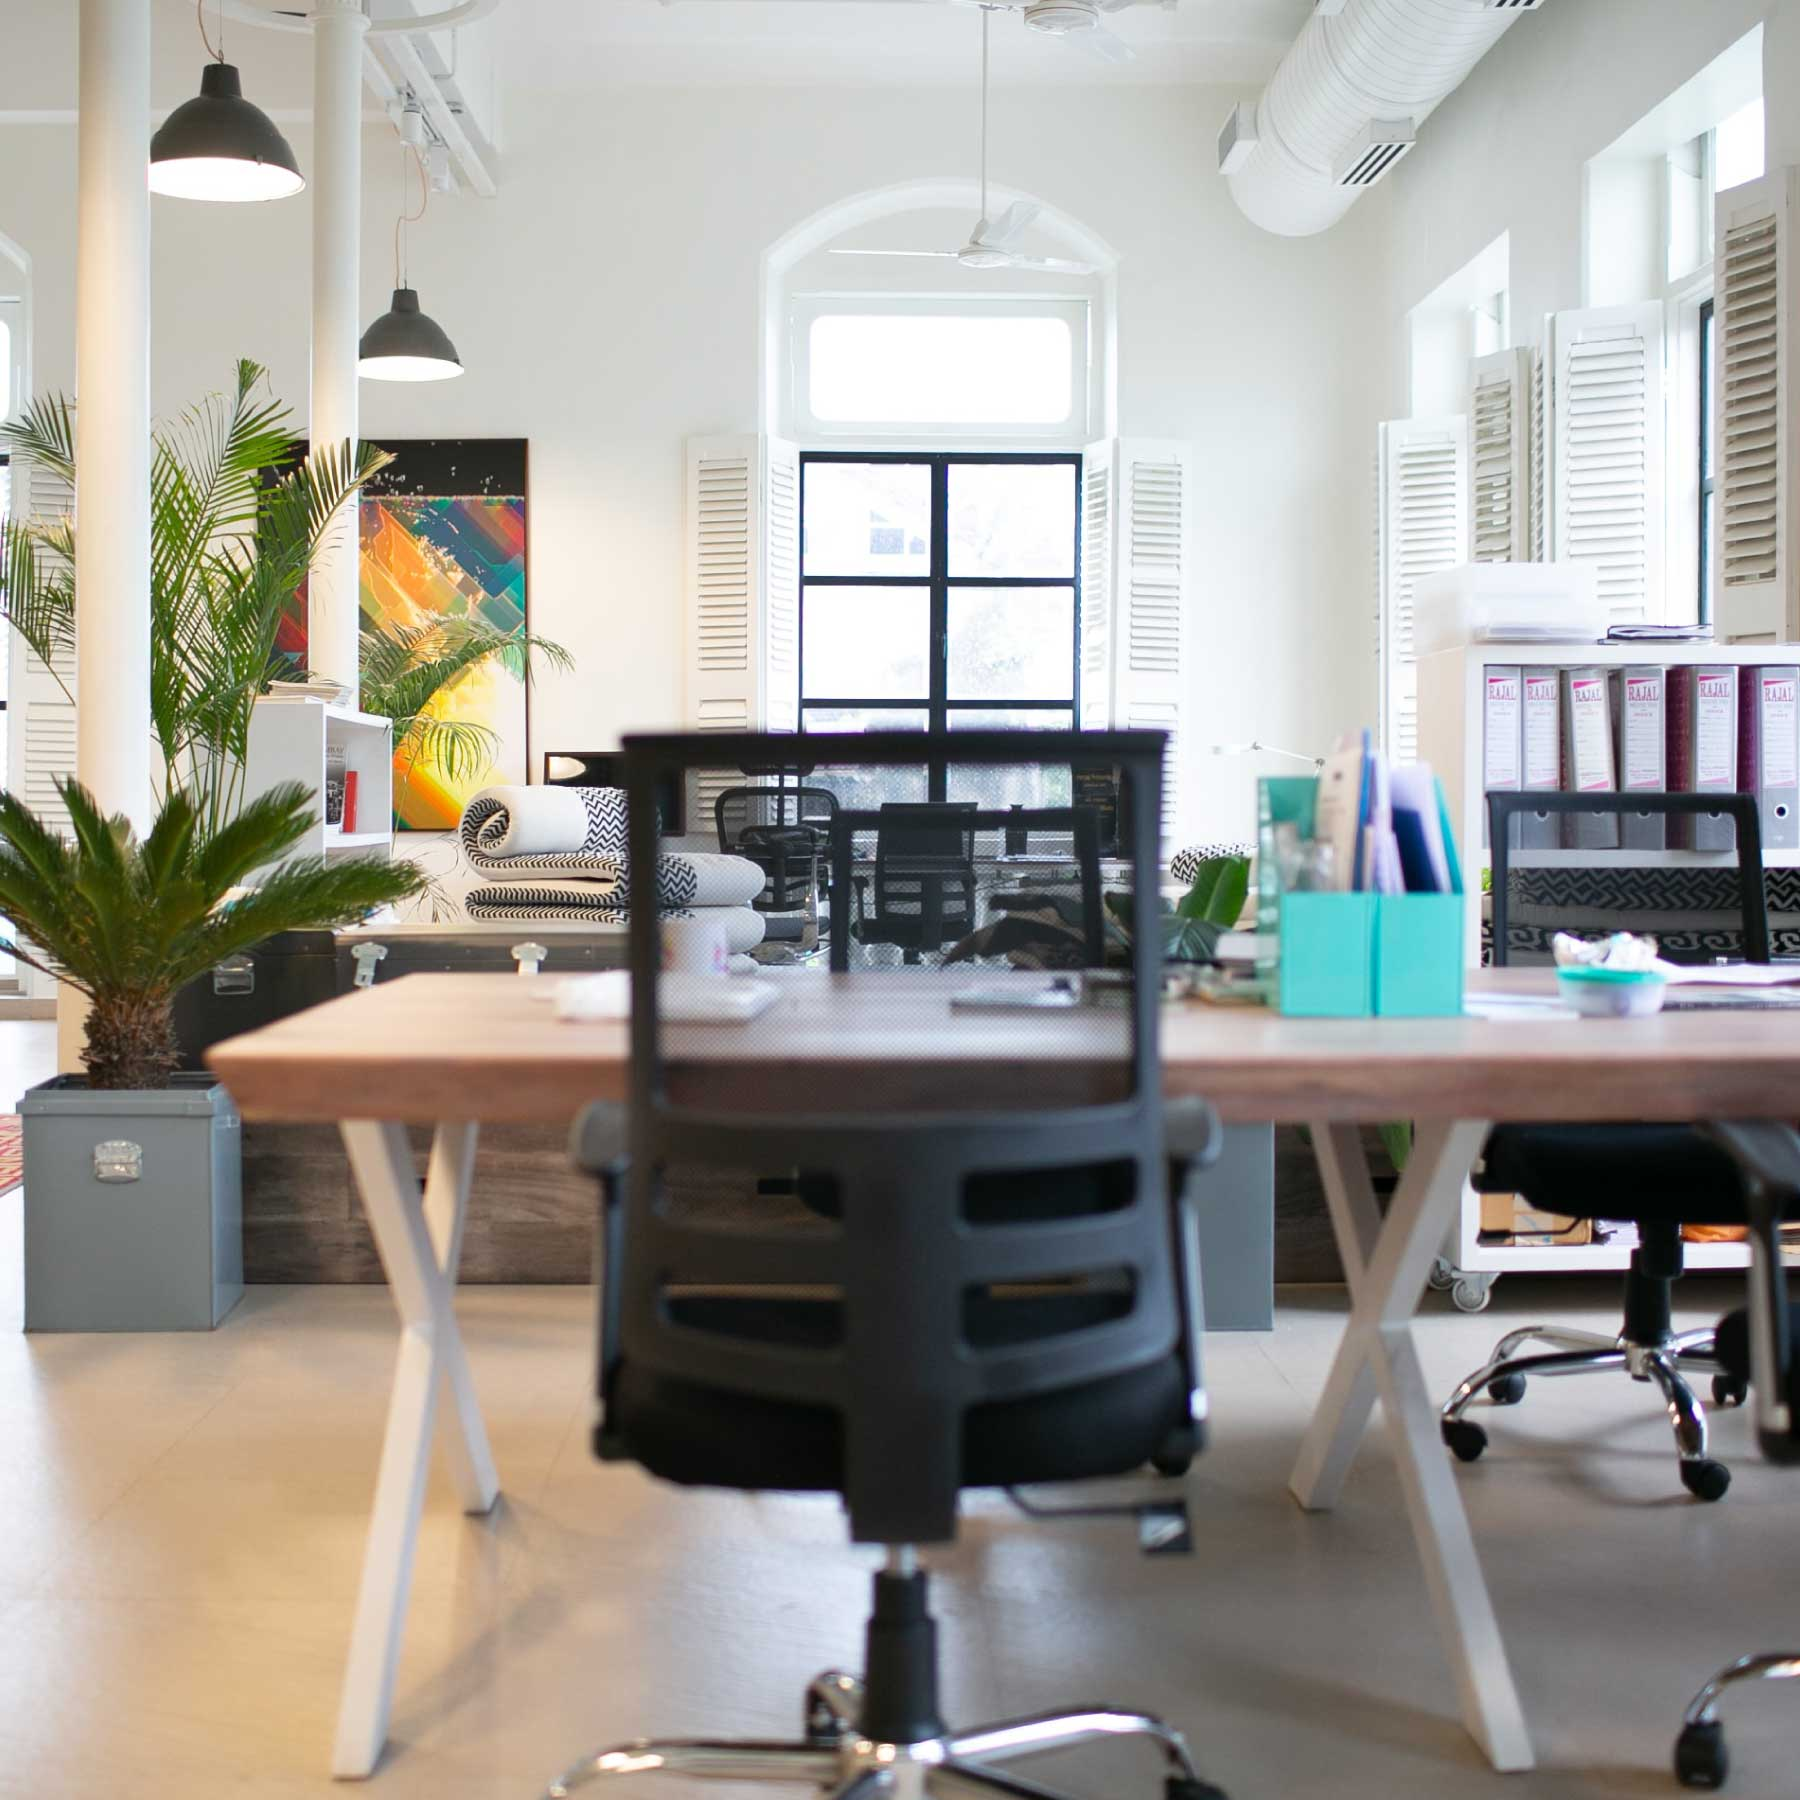 The Best Office Chair for a Well-Supported Back